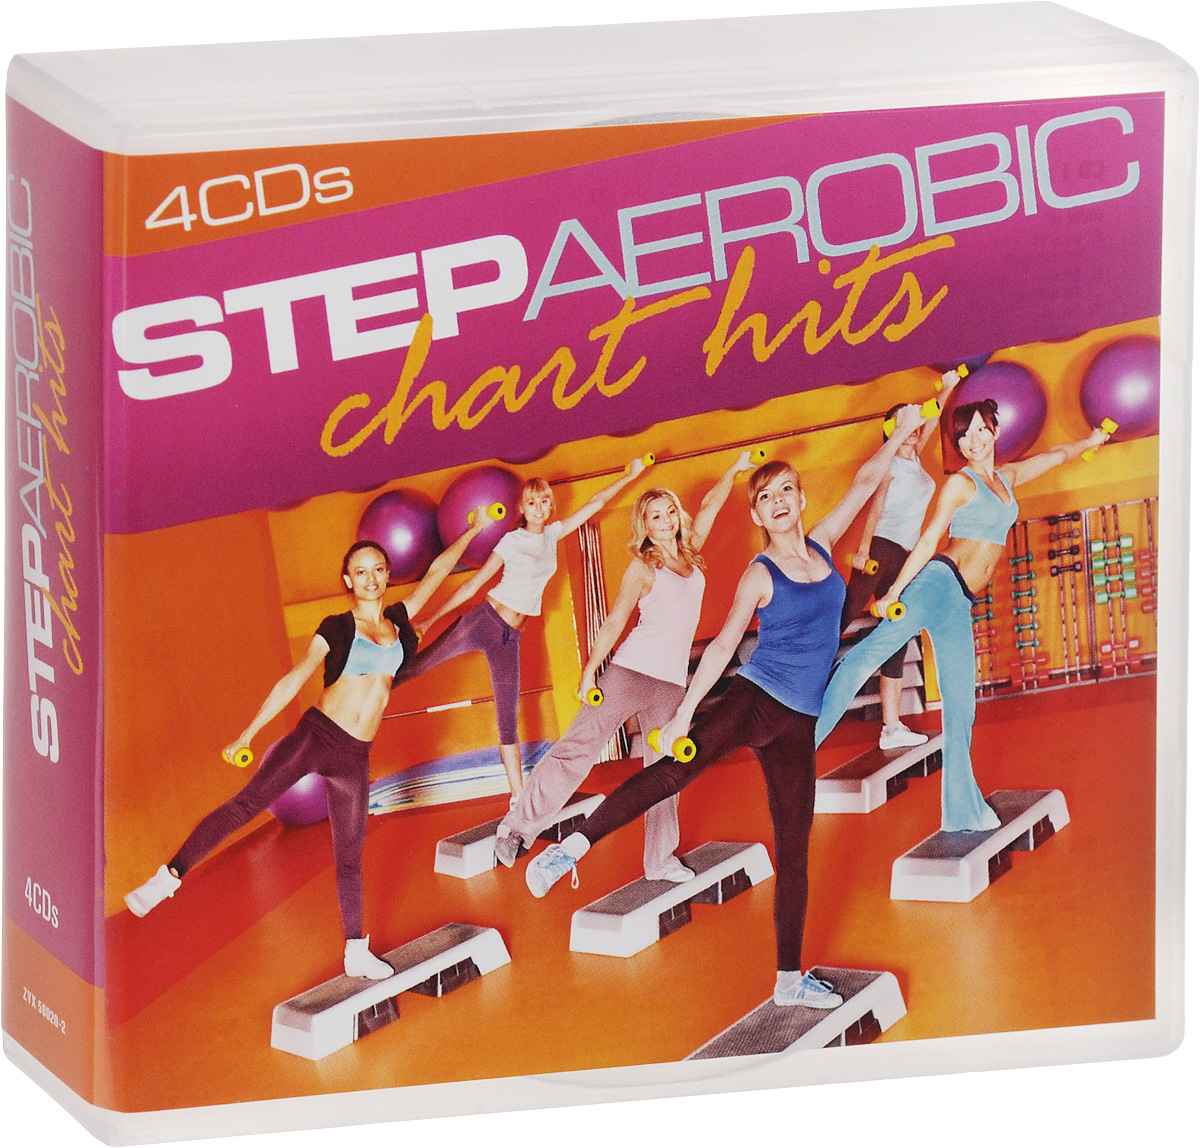 Step Aerobic. Chart Hits (4 CD)